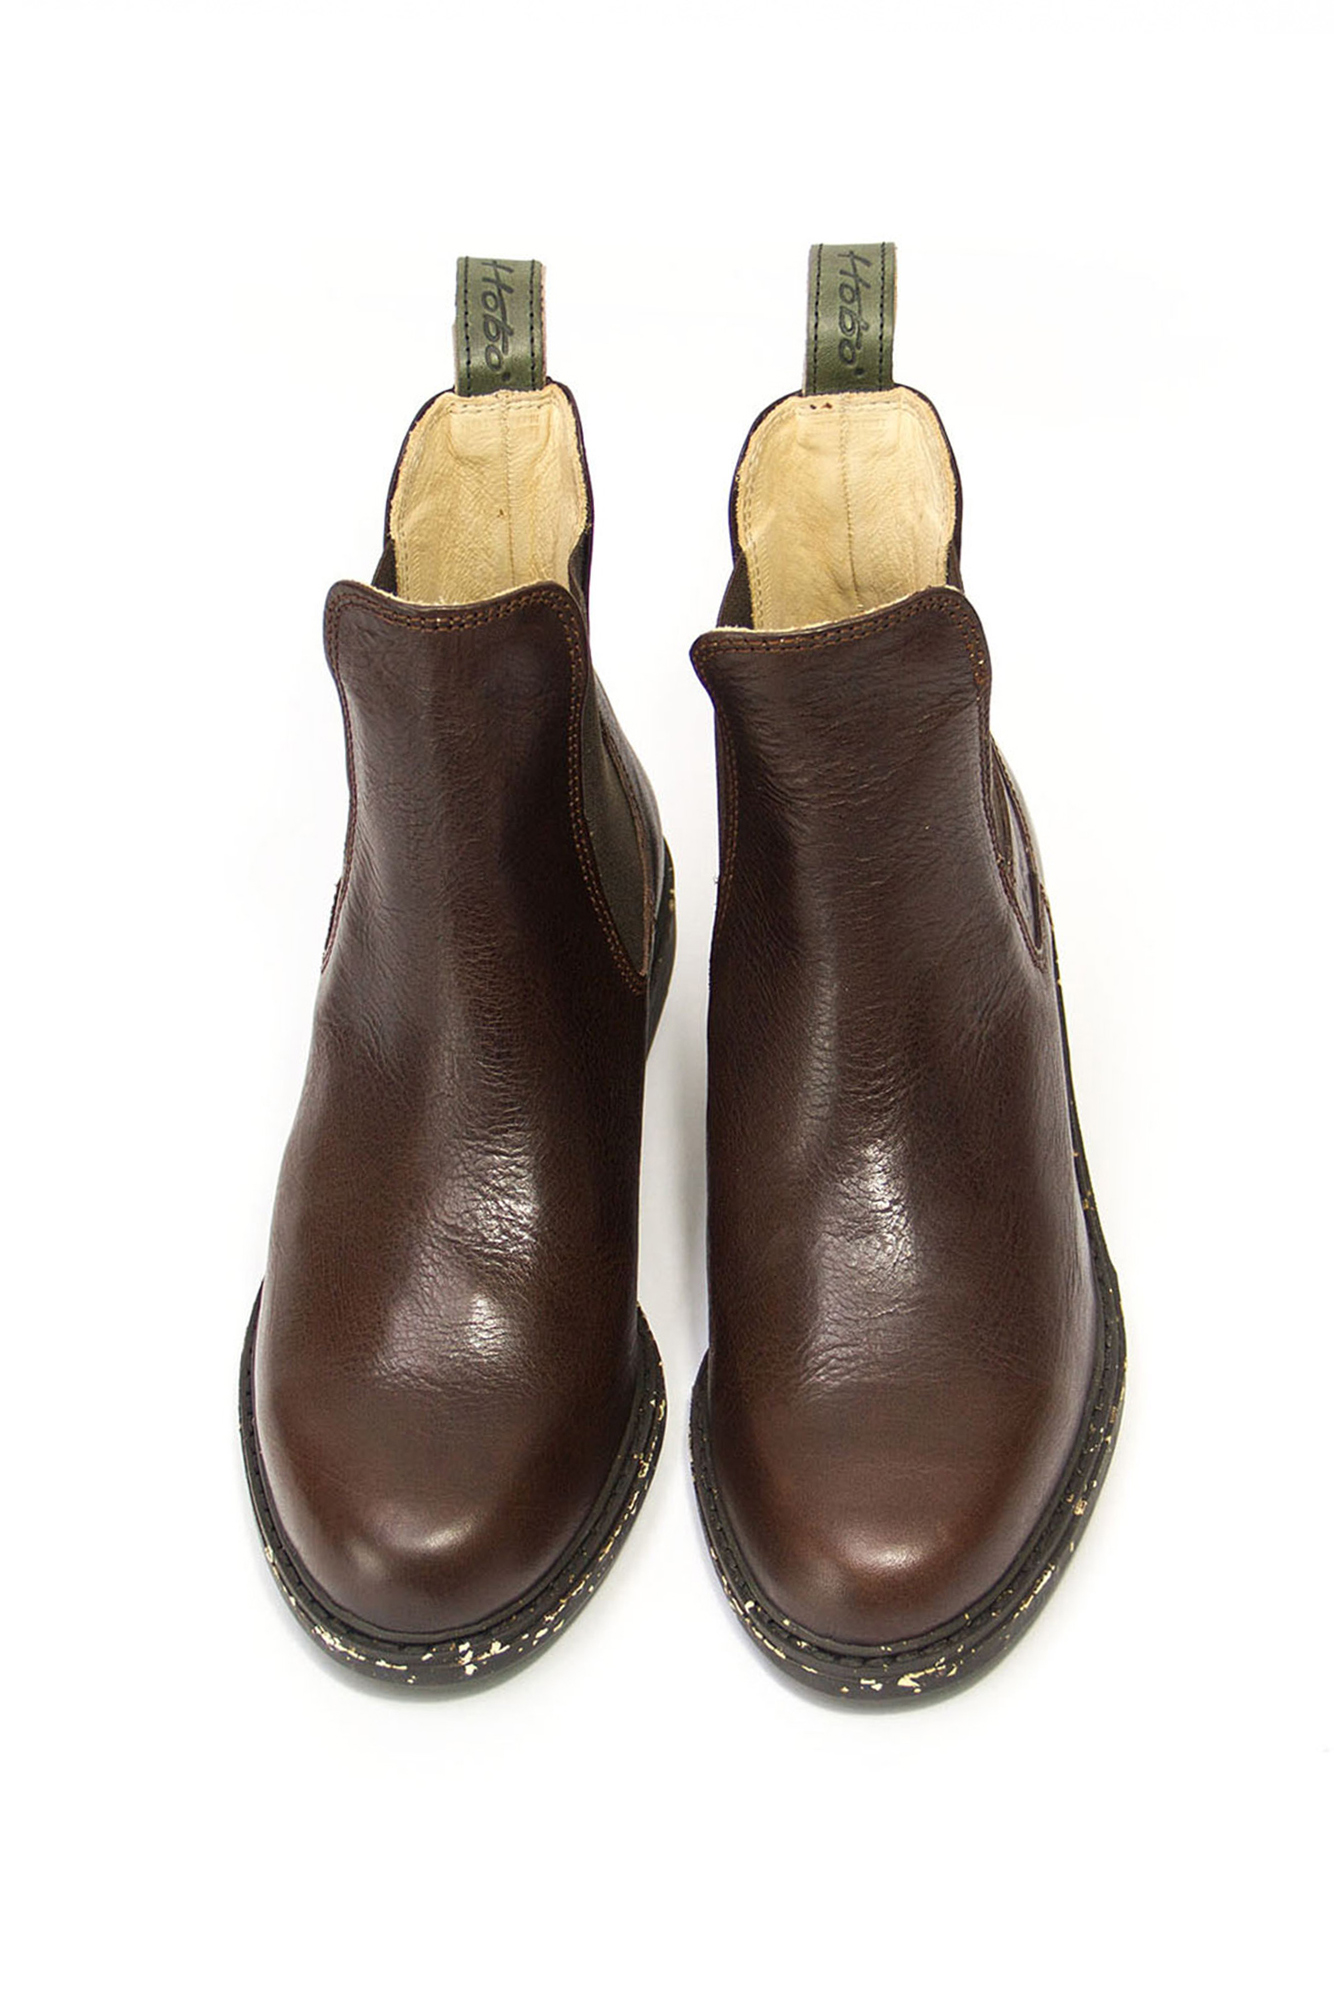 Adan Eco Stiefelette brown braun